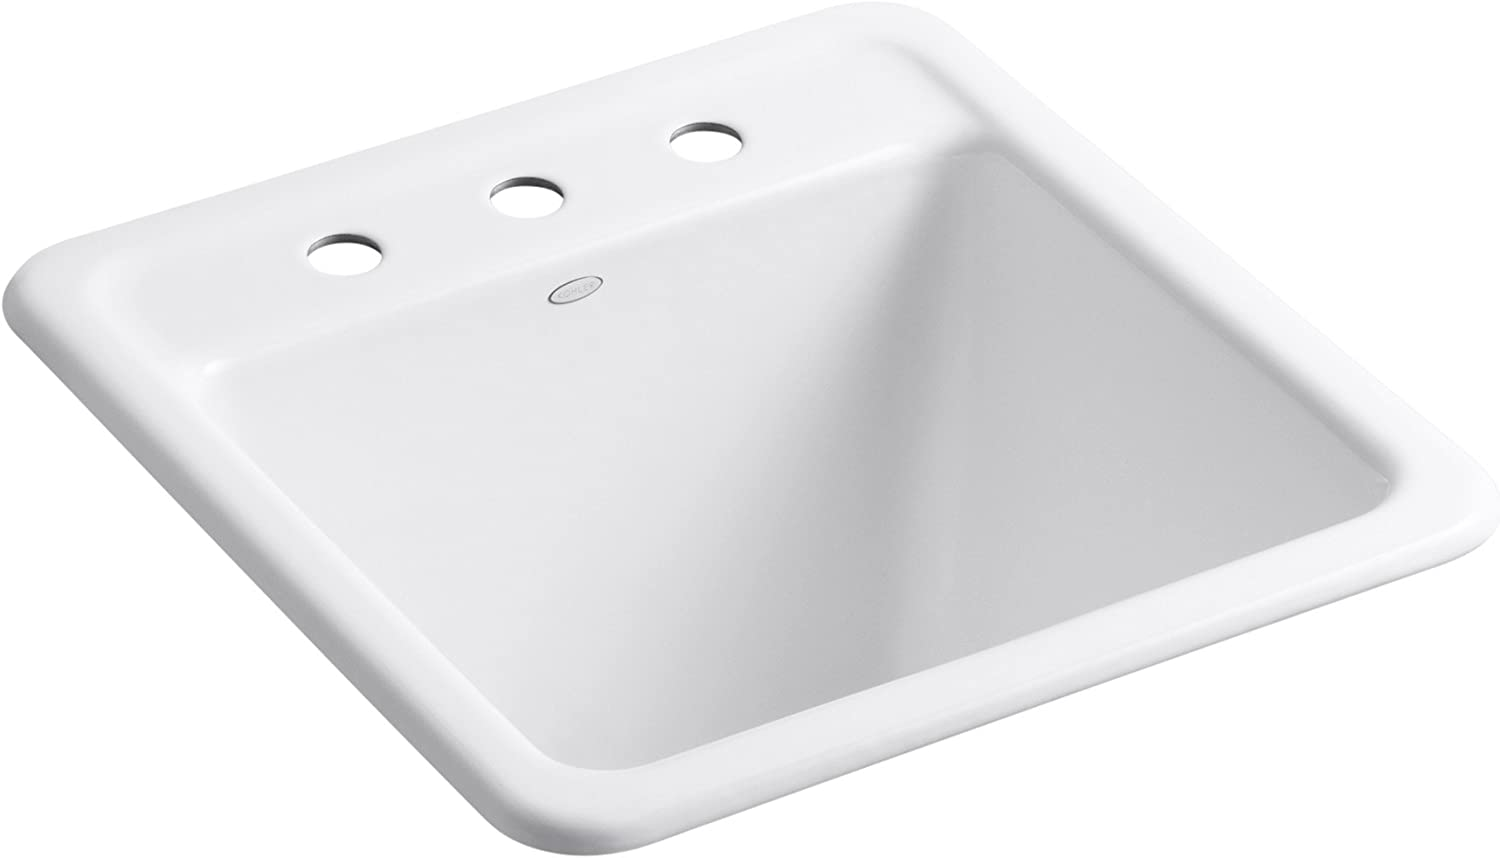 KOHLER K-19022-3-0 Park Falls Top-Mount/Undermount Utility Sink with Three Faucet Holes, White